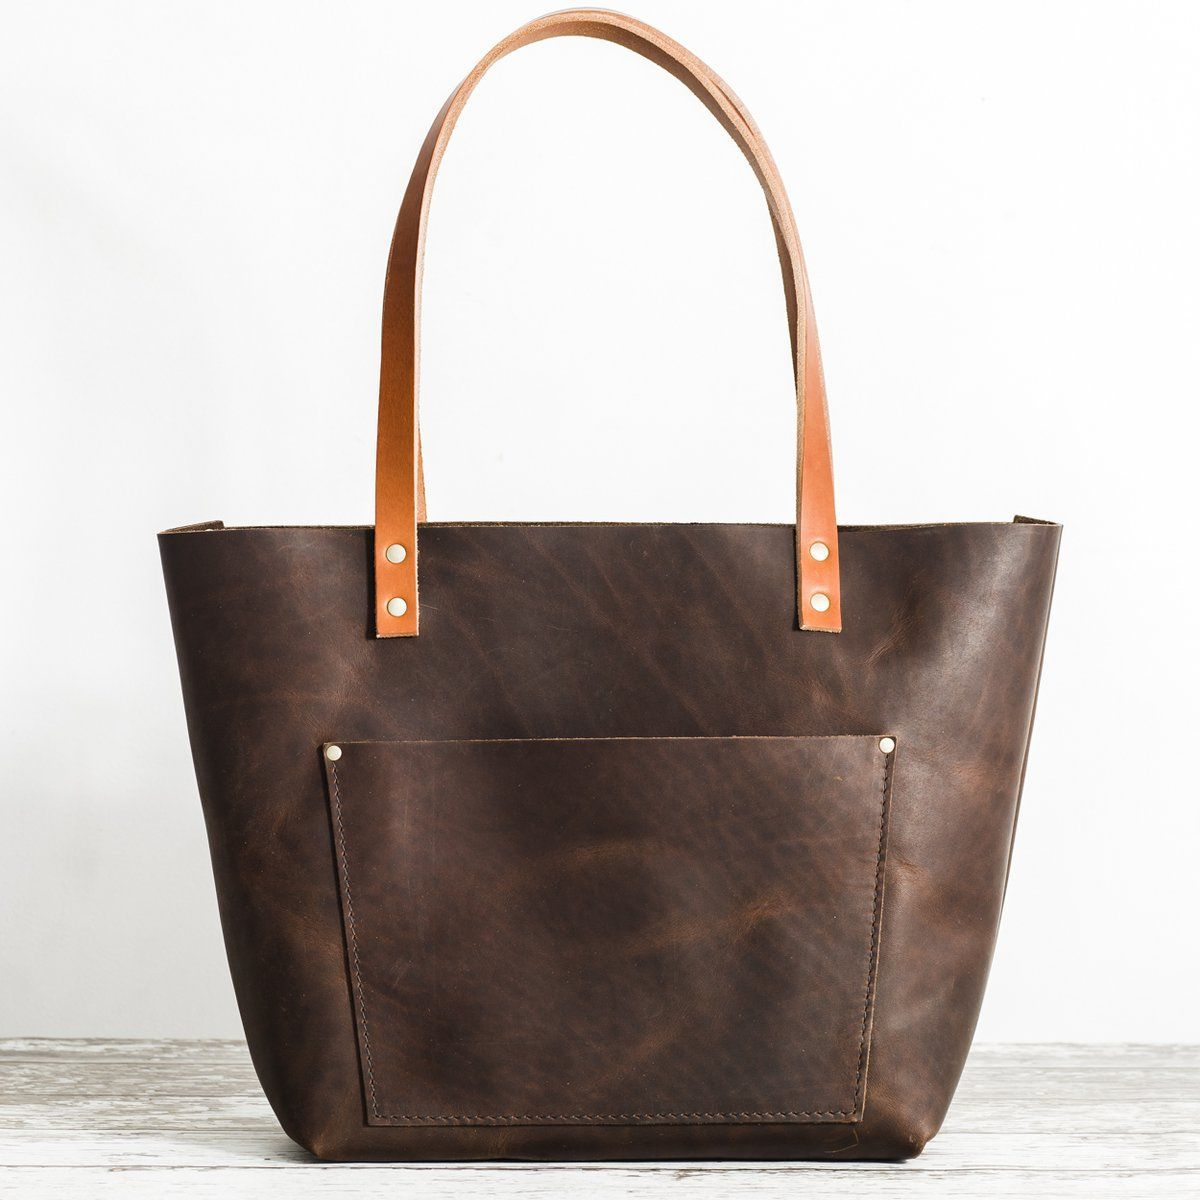 72a7c757cff0 A dark brown leather tote bag with natural character